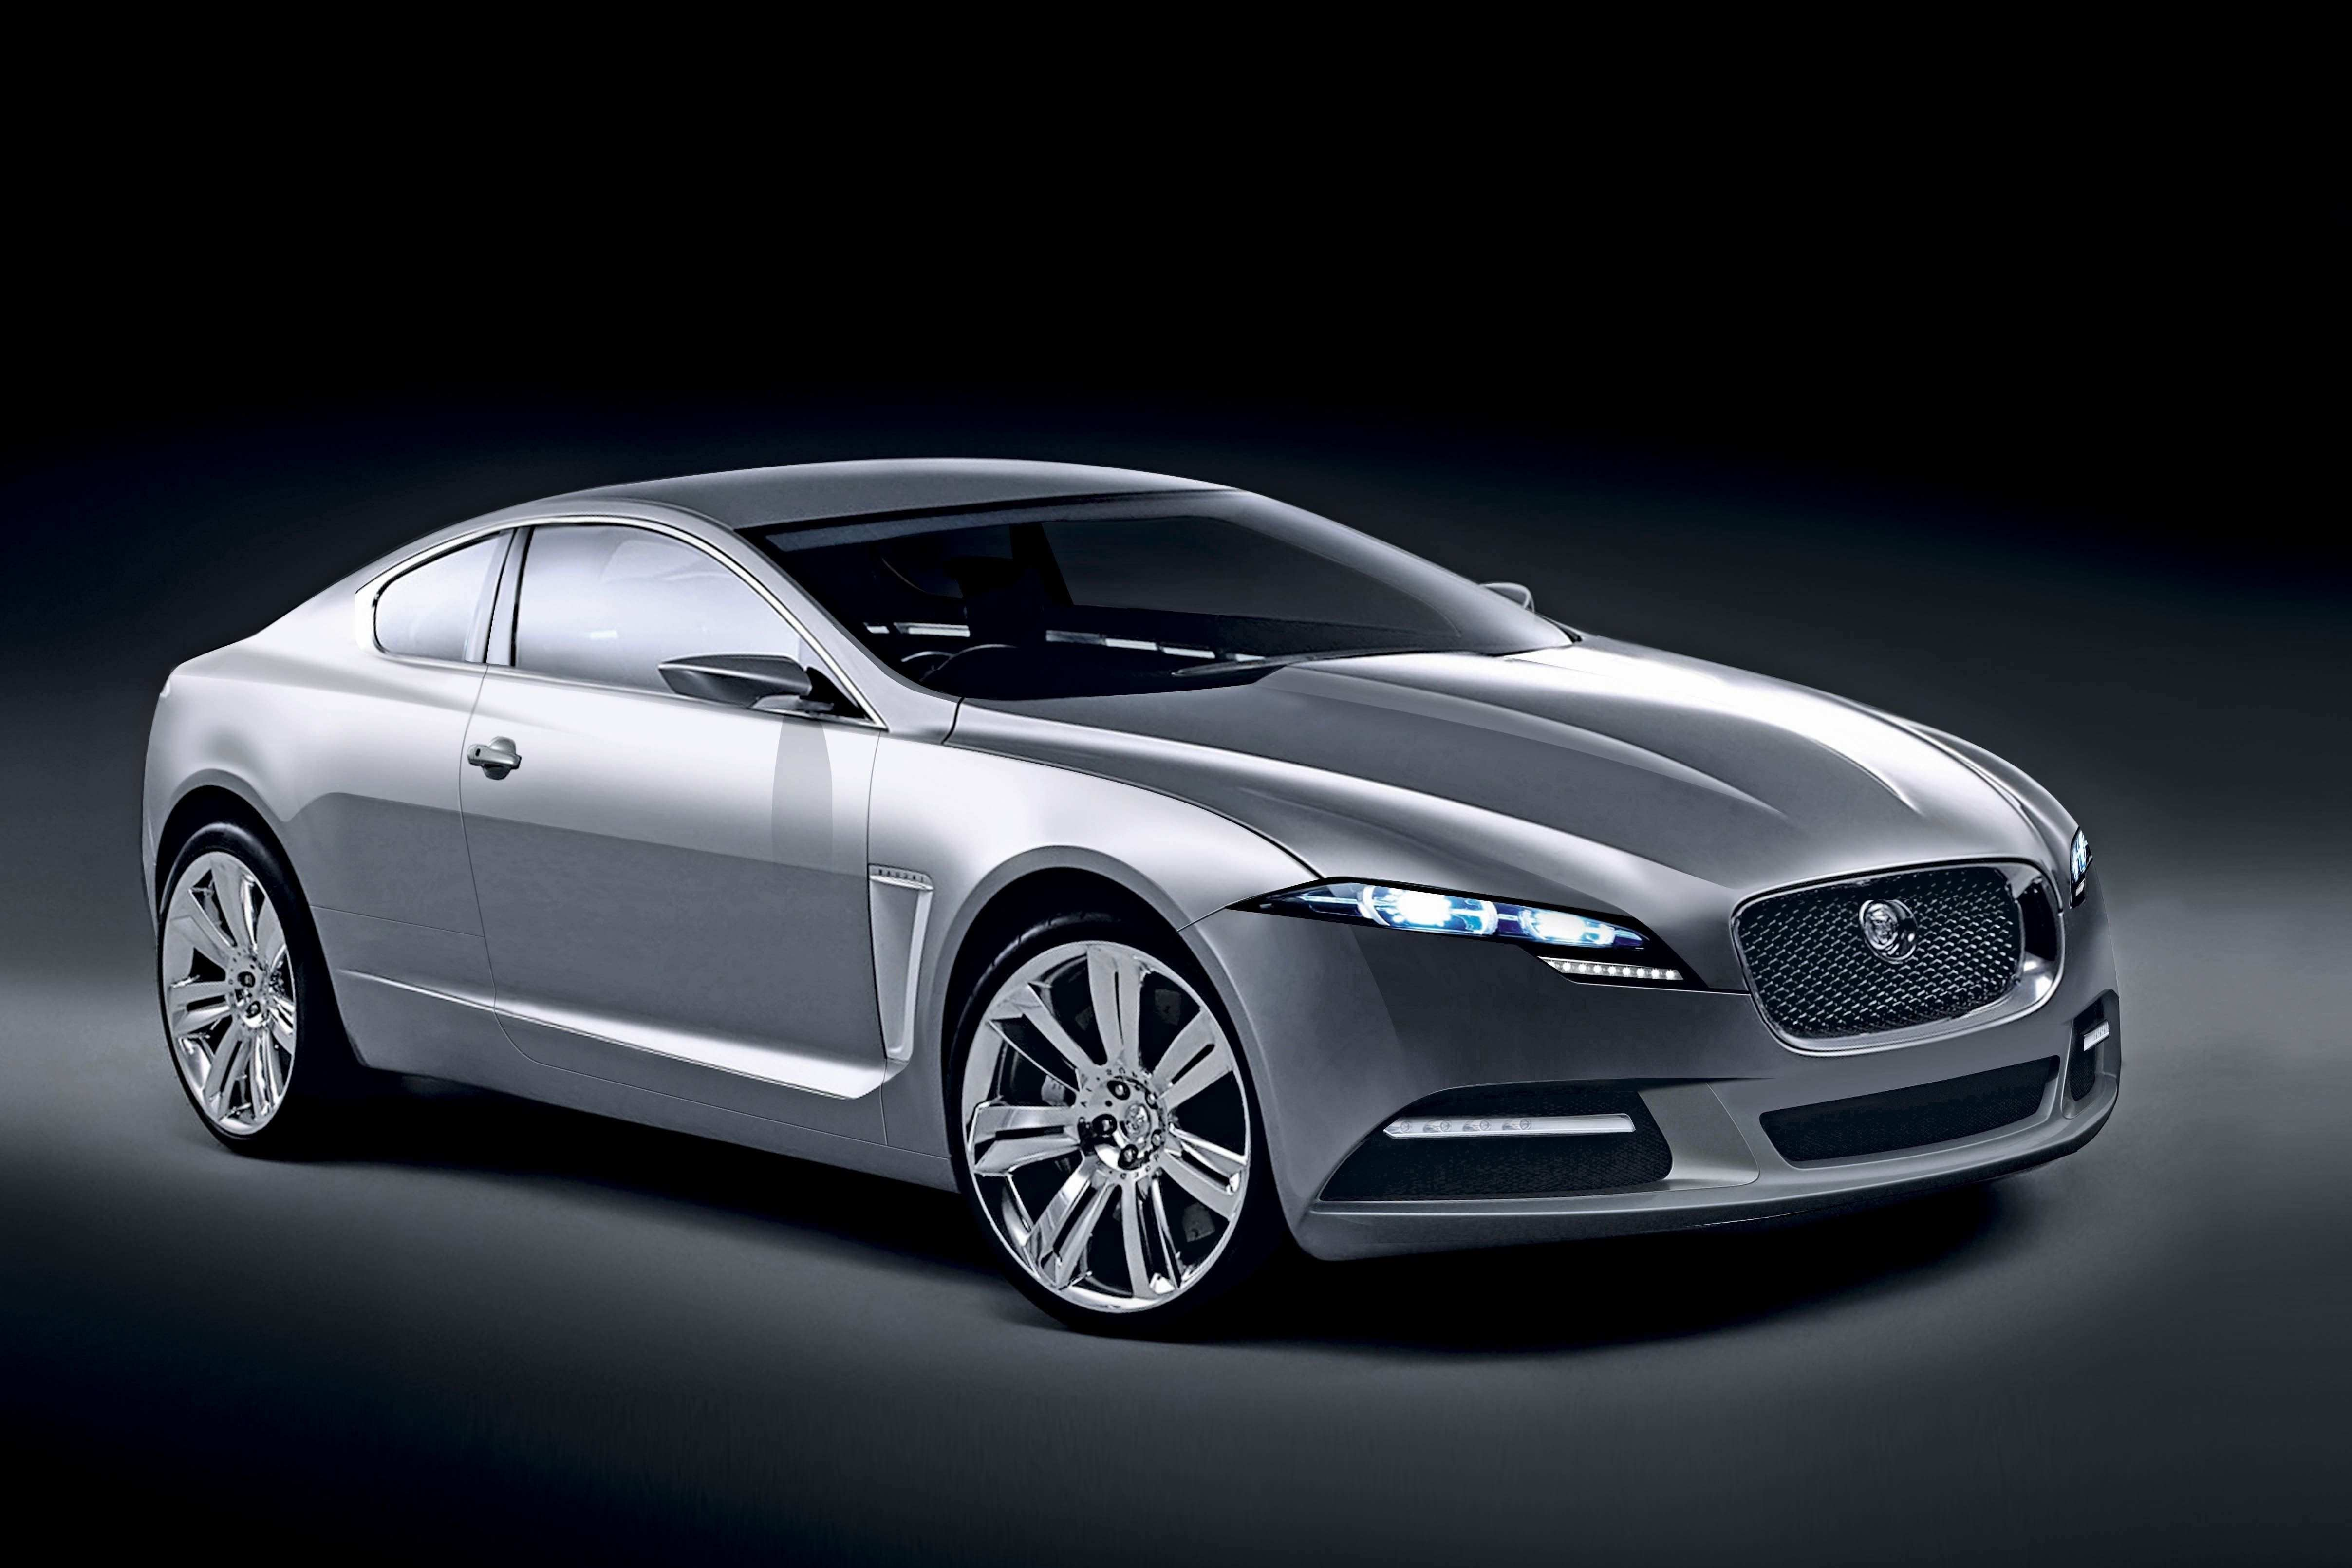 98 New Jaguar Xj Coupe 2019 Price and Review by Jaguar Xj Coupe 2019